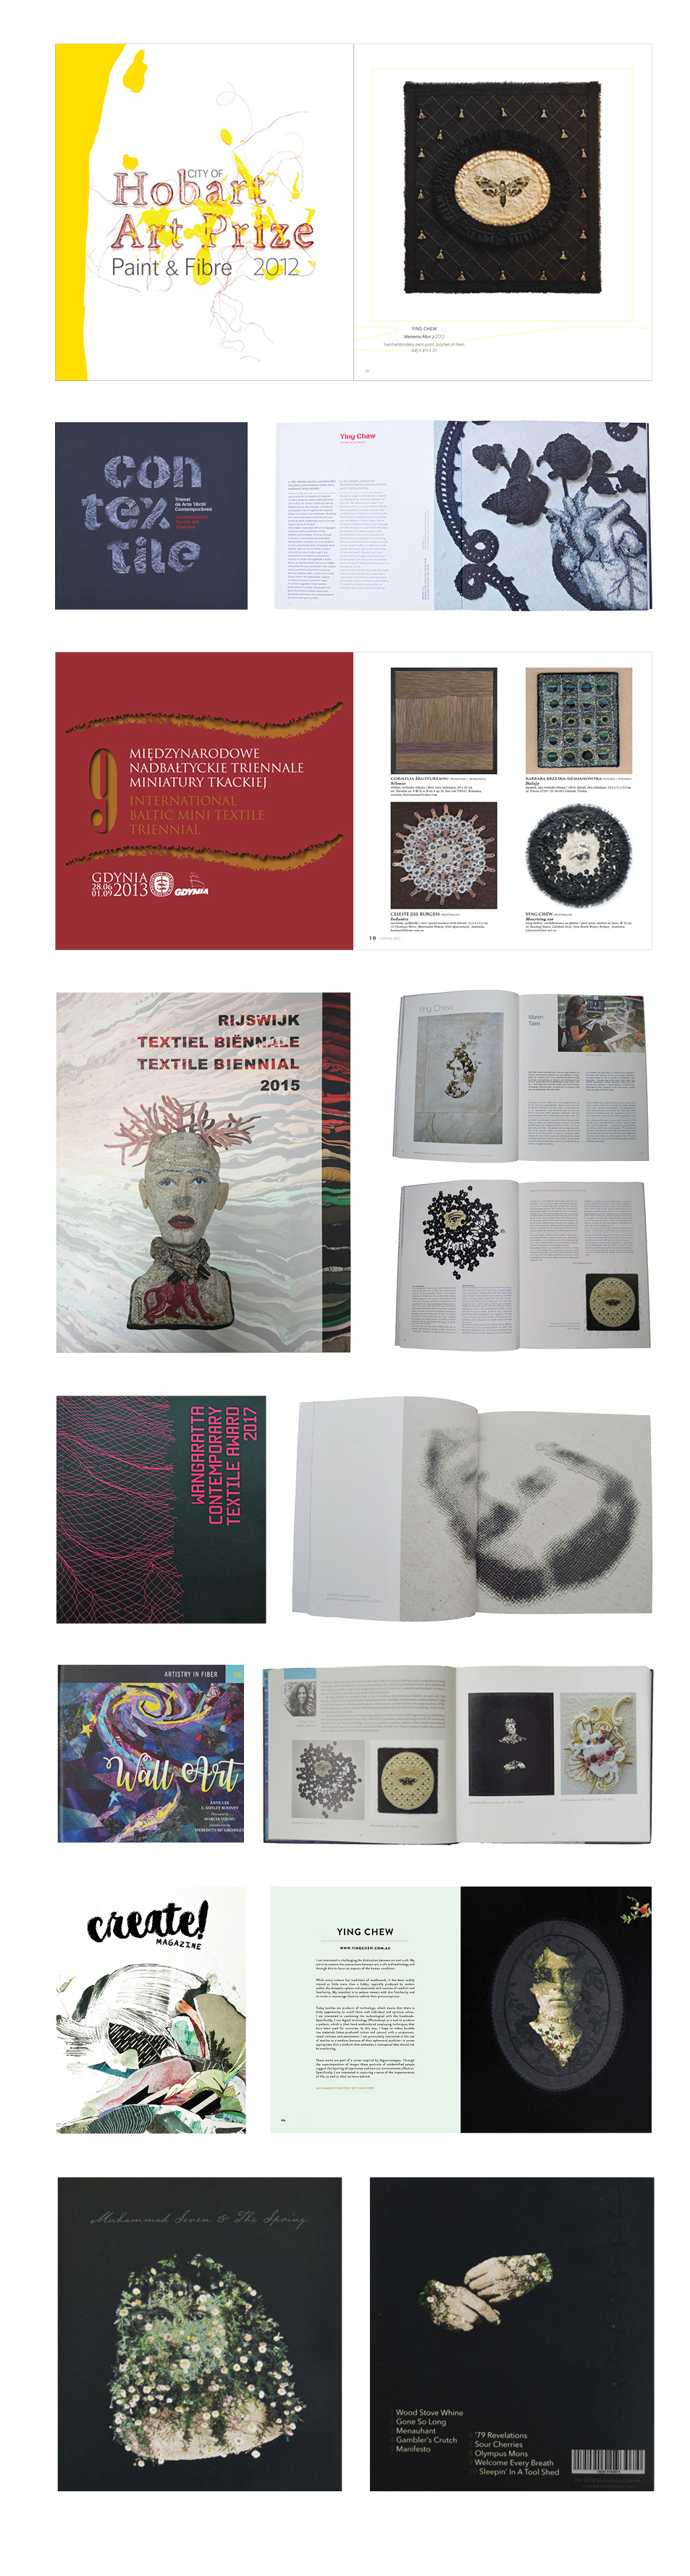 catalogues3.jpg